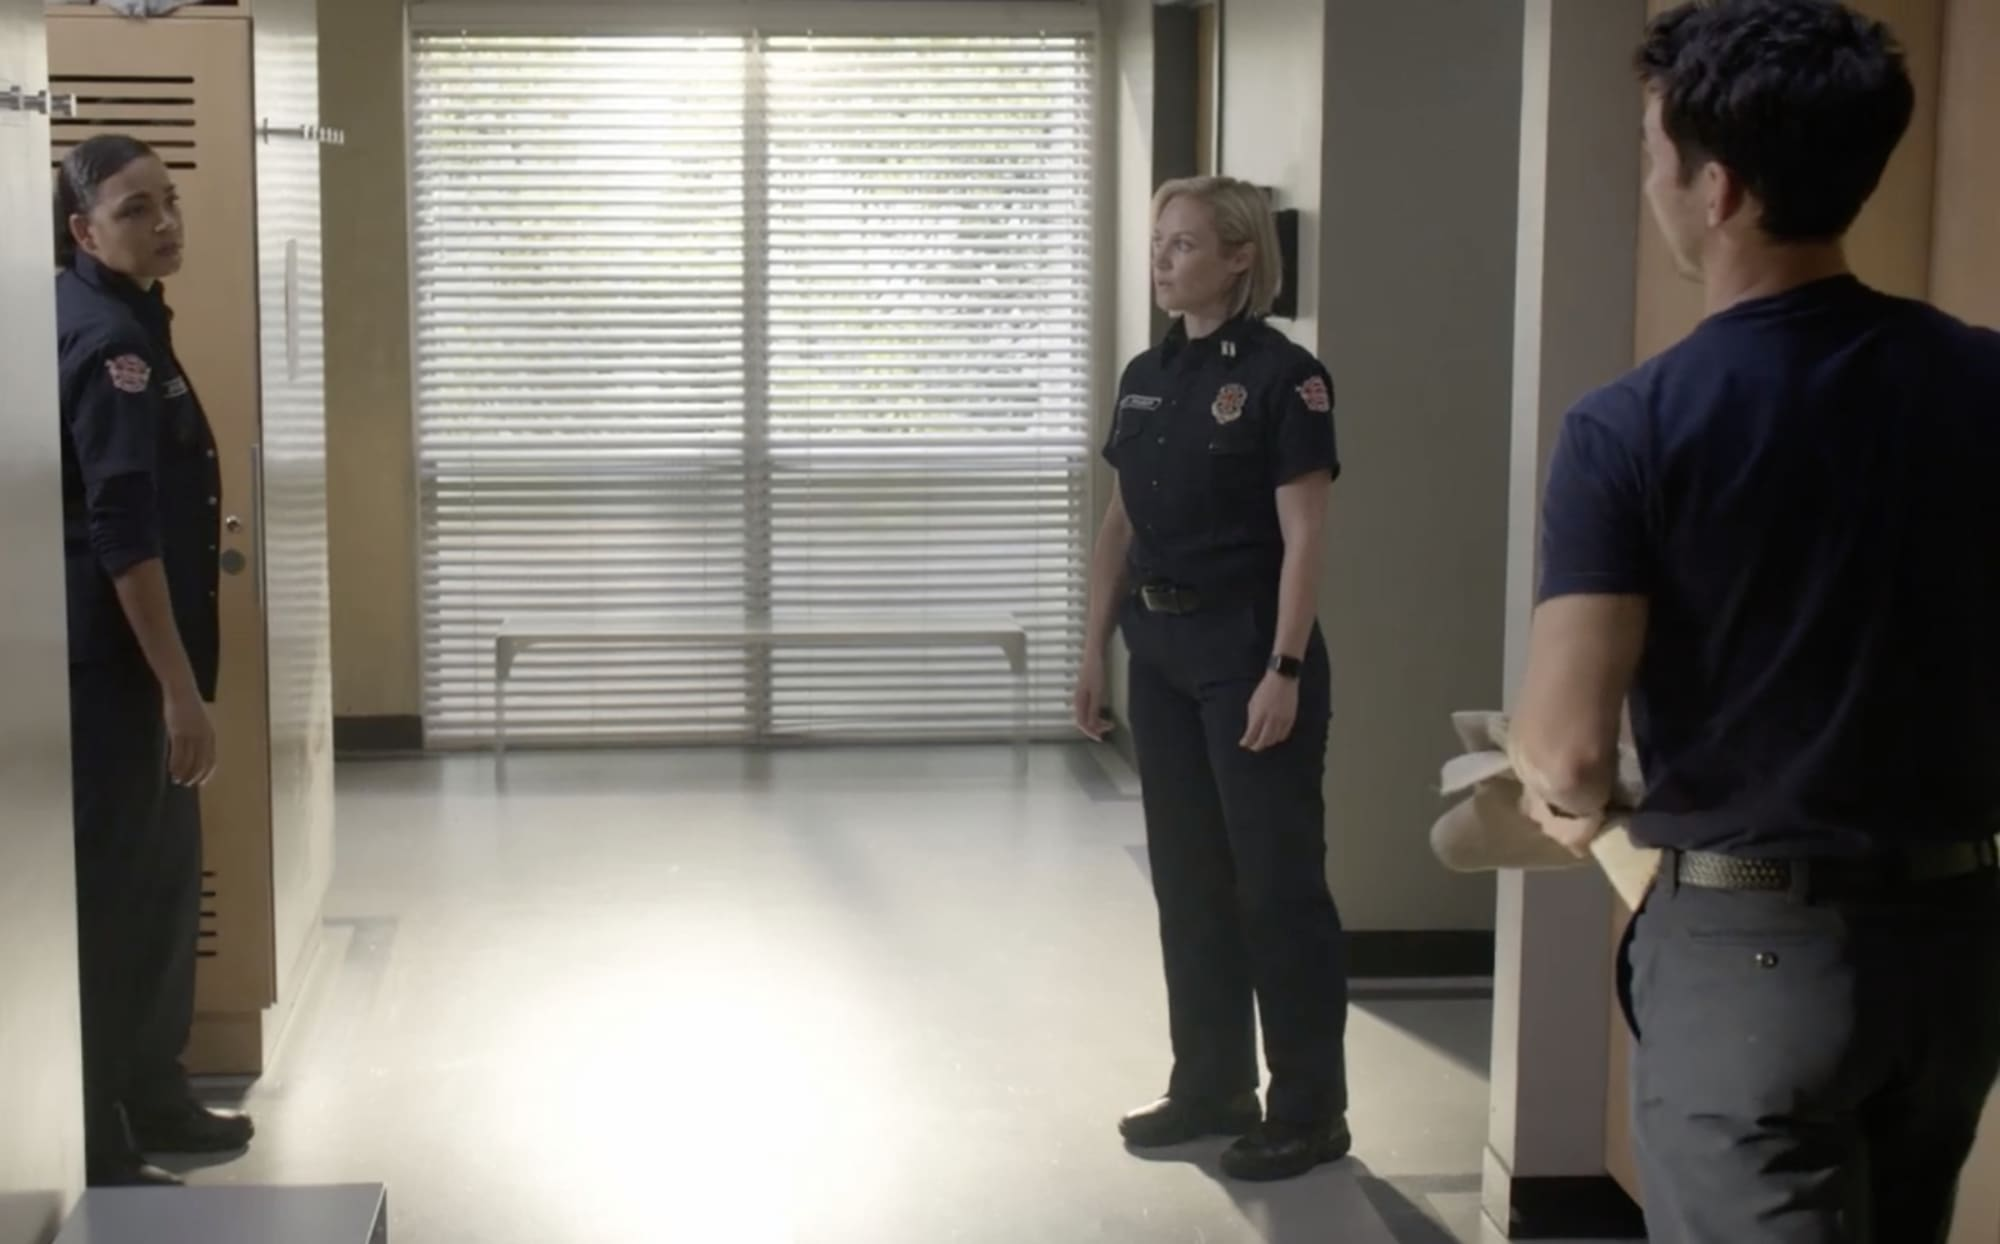 Station 19 Season 4 Episode 14 Release Date and Spoiler